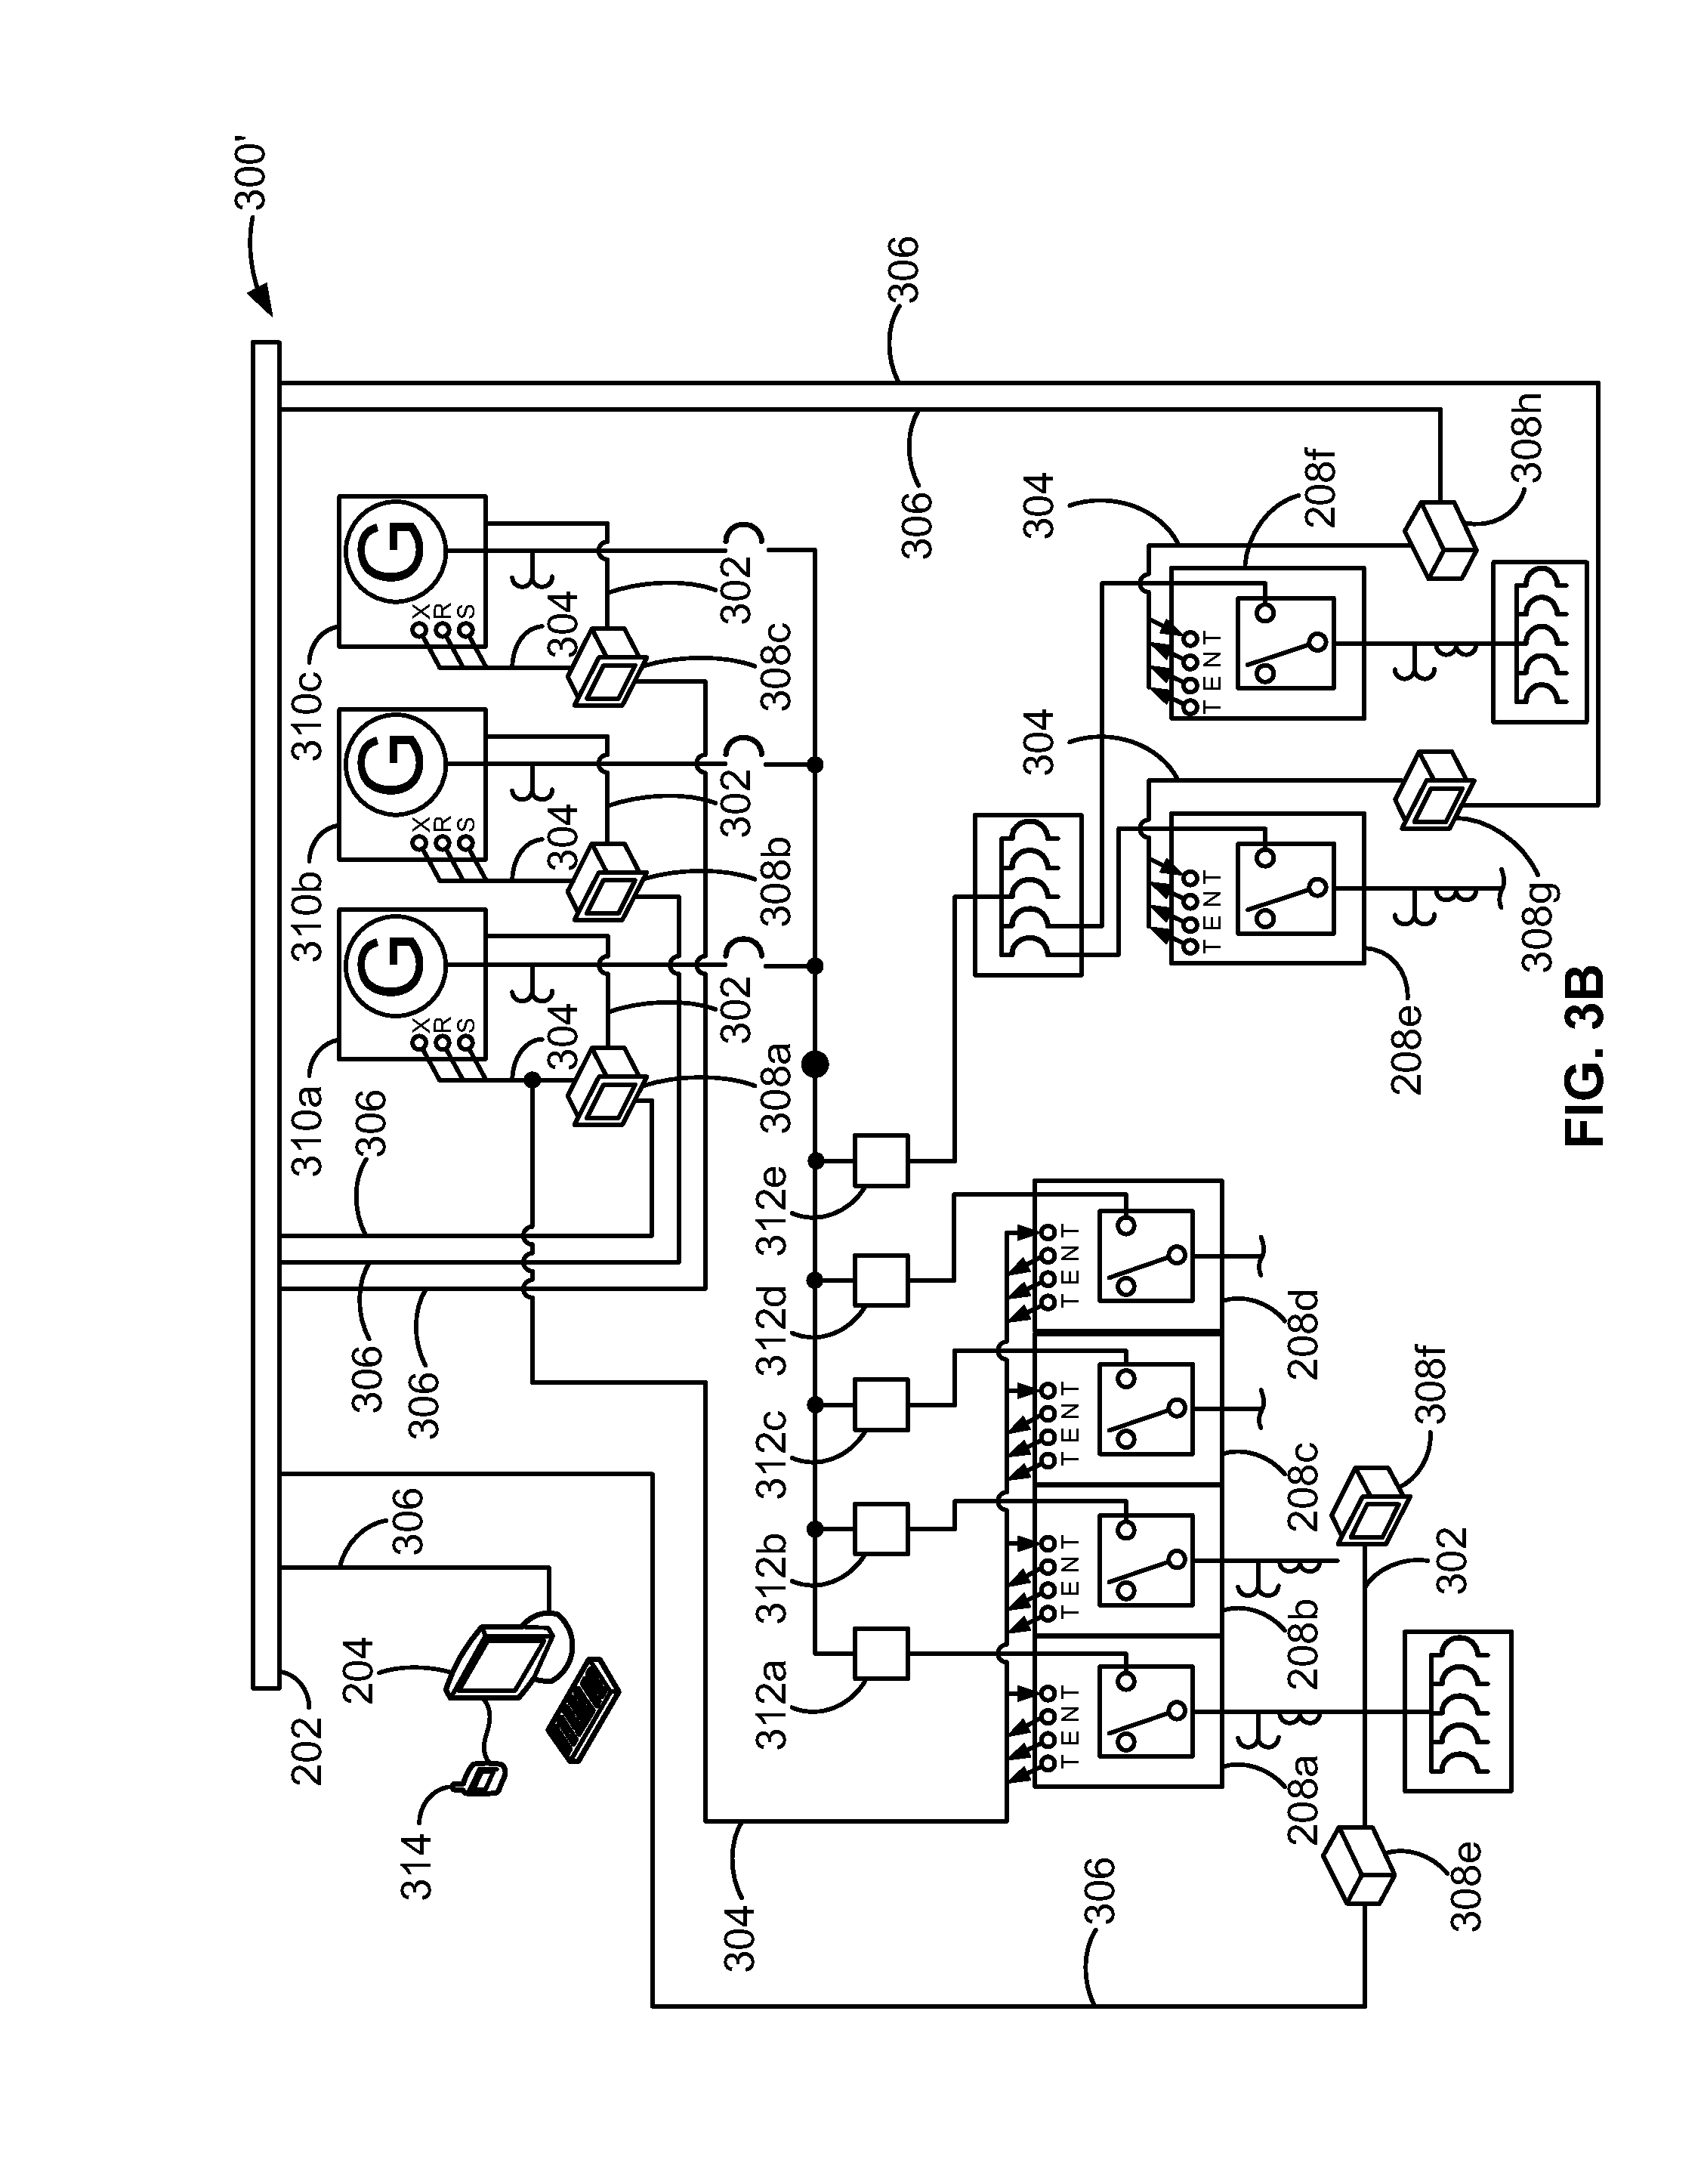 Patent US Automated emergency power supply system